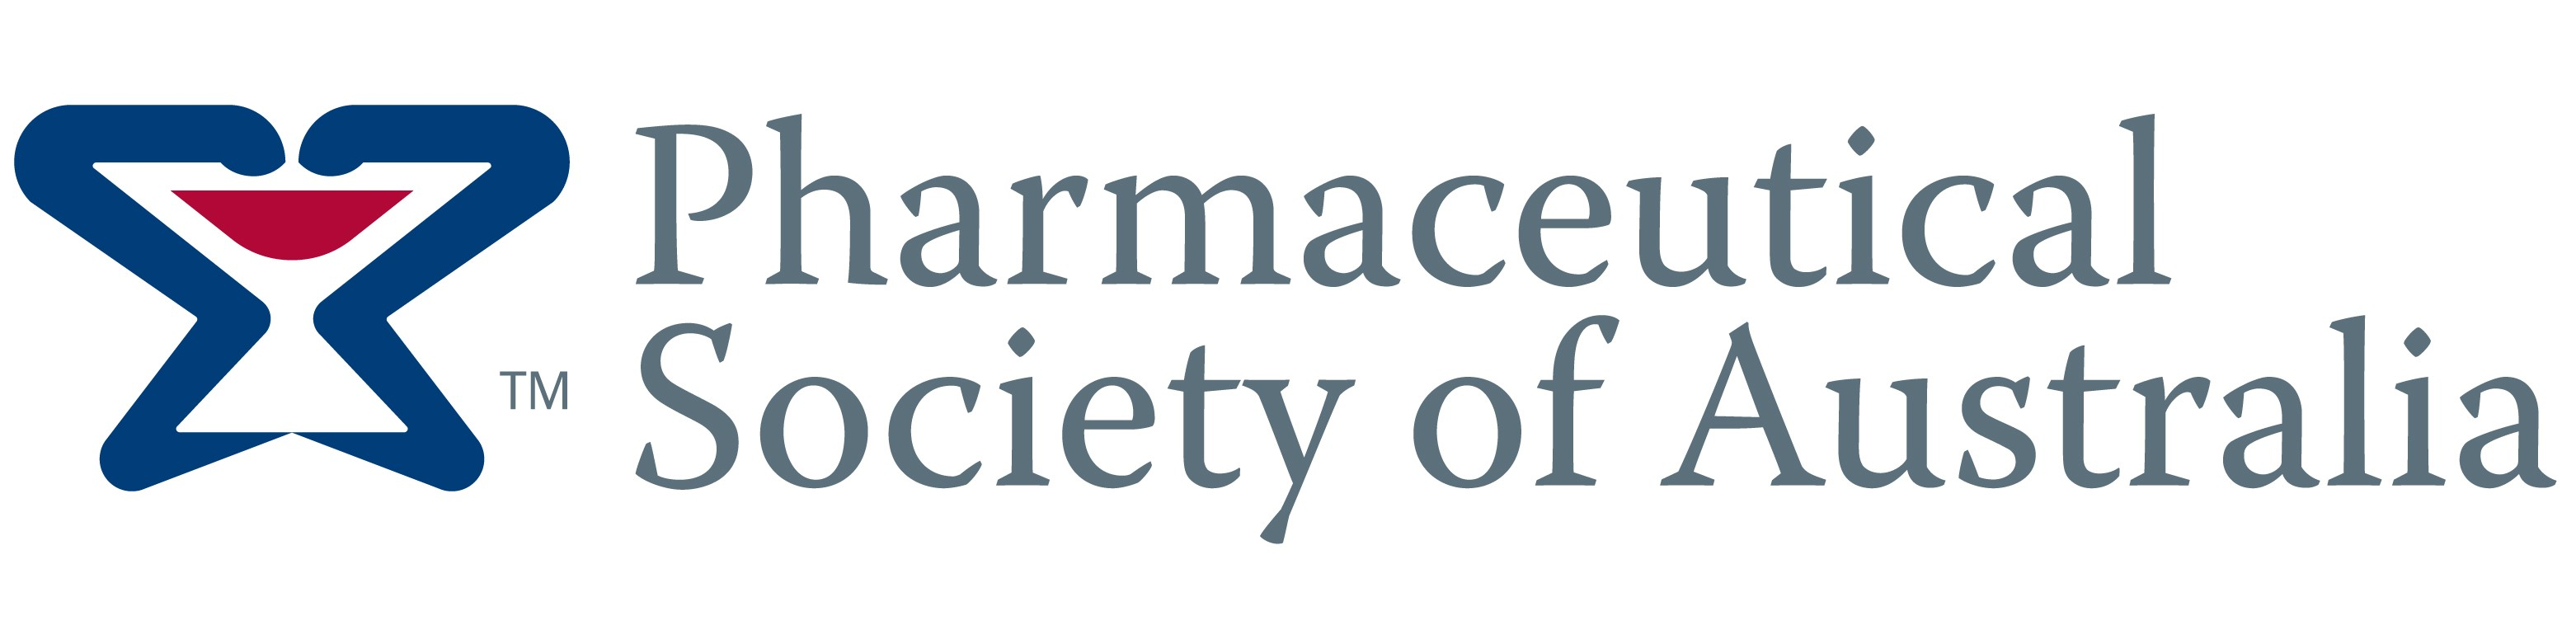 Pharmaceutical Society logo